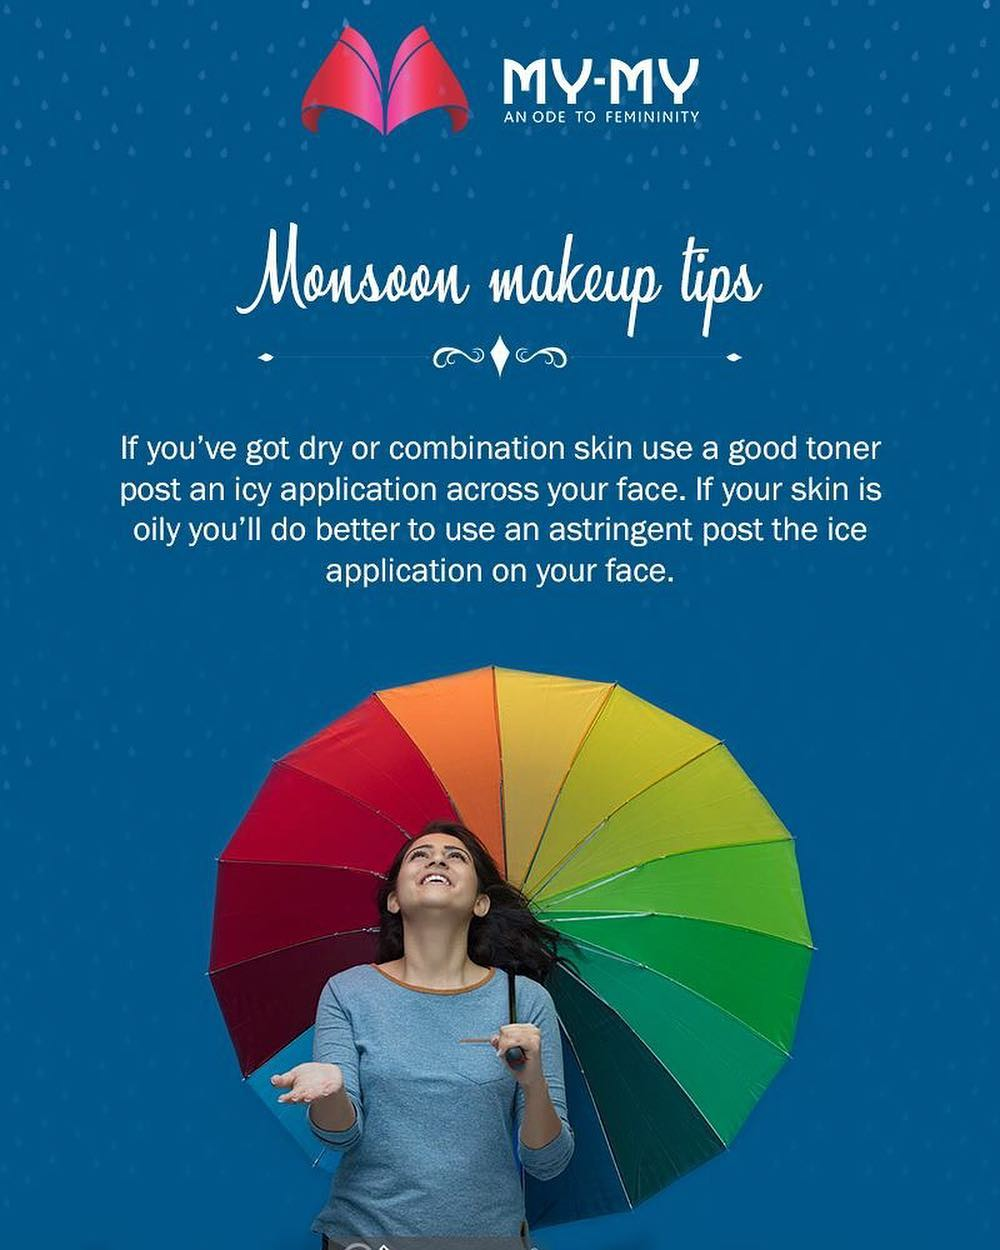 Some quick makeup fix for the monsoon!  #MakeUpTips #MonsoonTips #MyMy #MyMyAhmedabad #Fashion #Ahmedabad #FemaleFashion